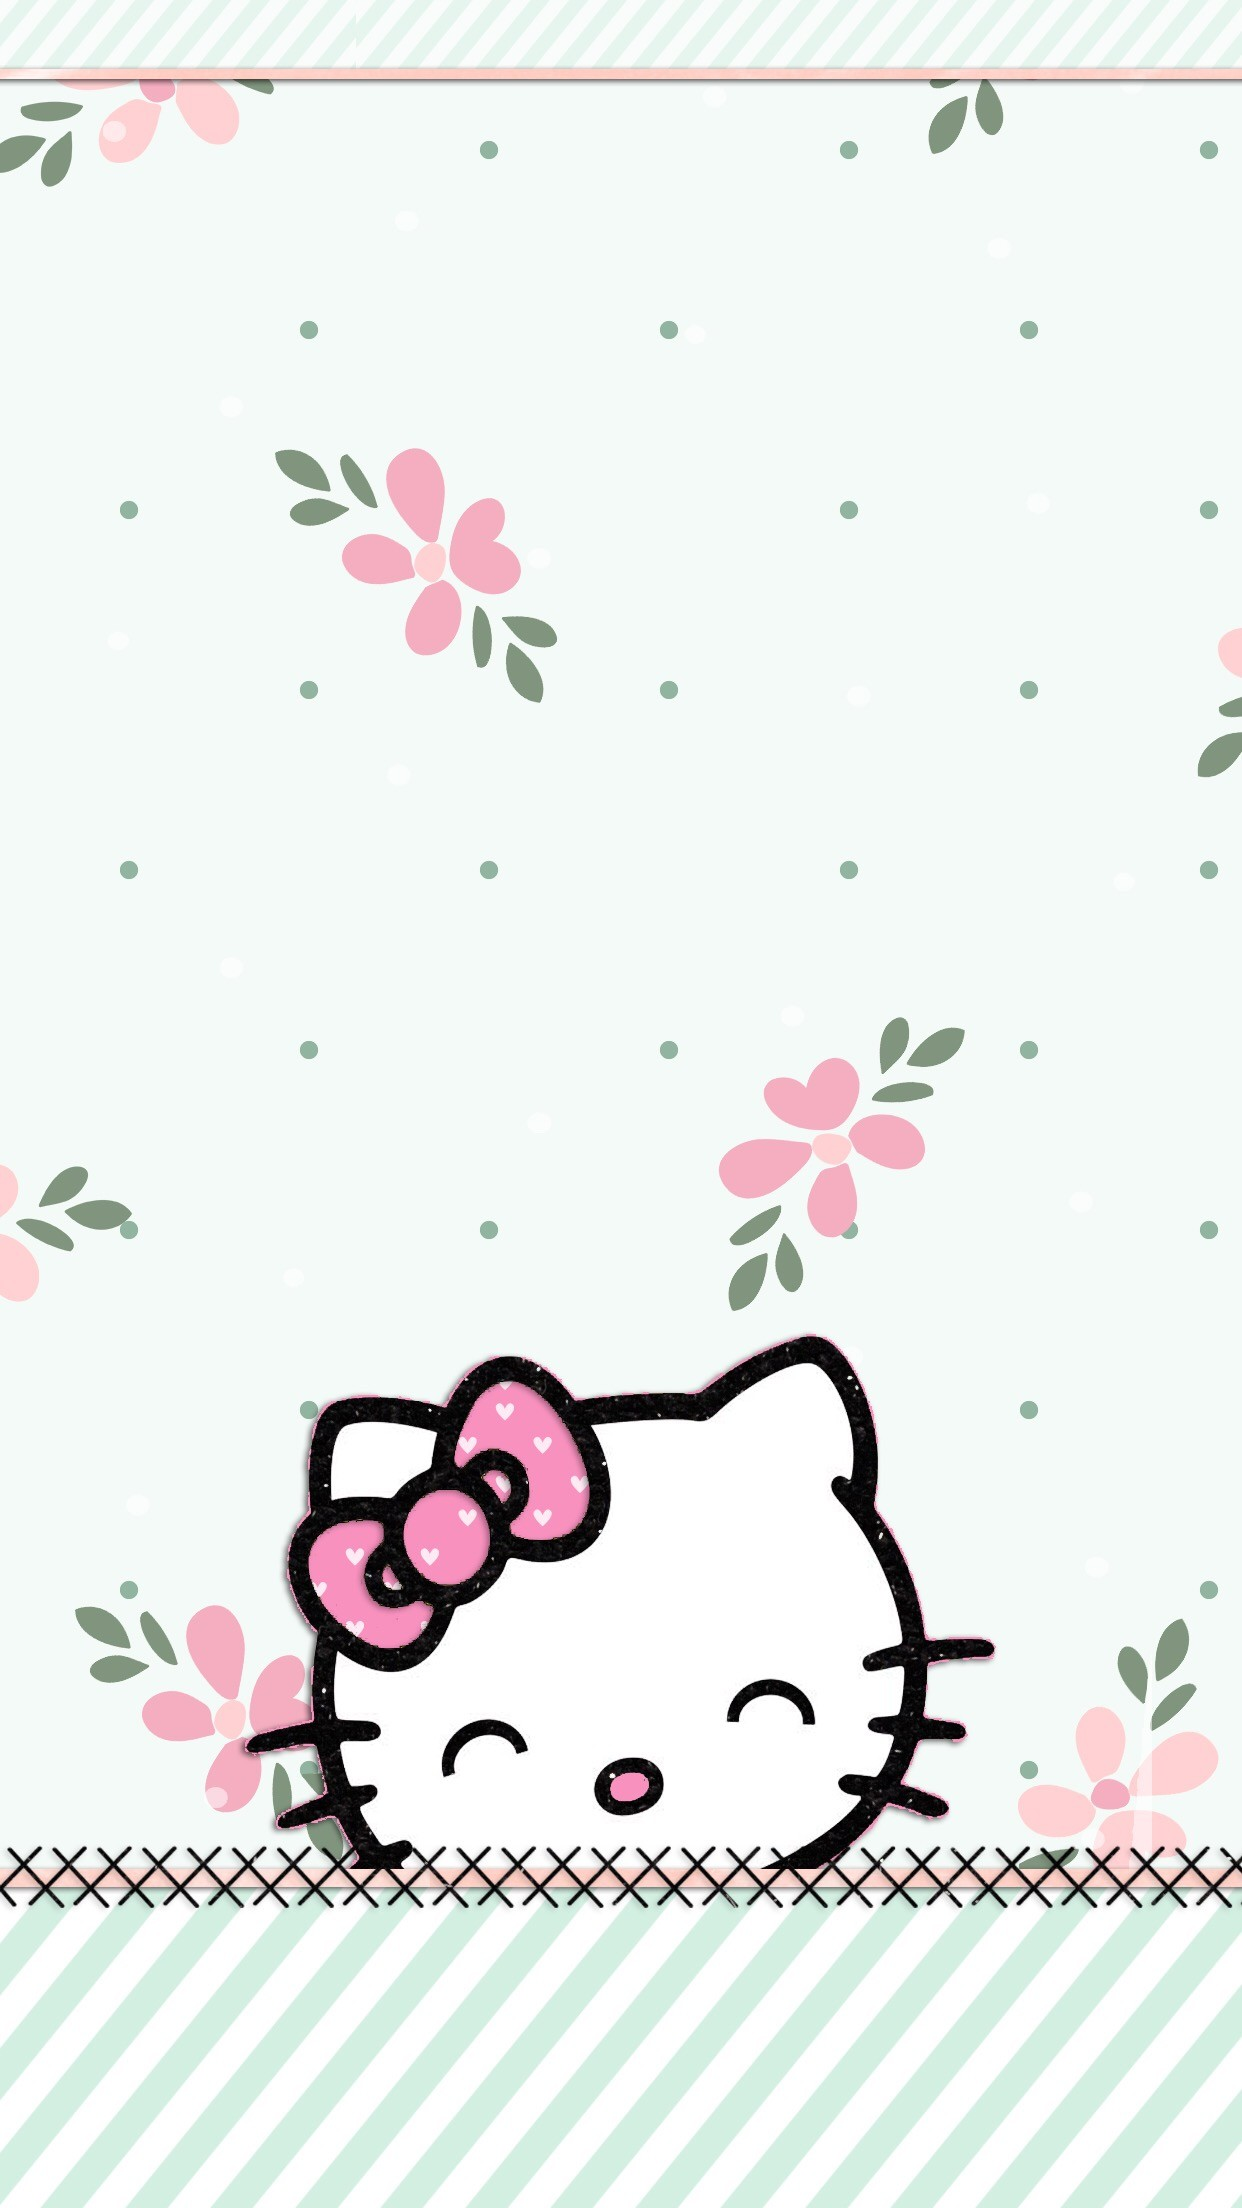 Popular Wallpaper Mobile Hello Kitty - 836495-best-hello-kitty-wallpaper-1242x2208-4k  HD_737044.jpg